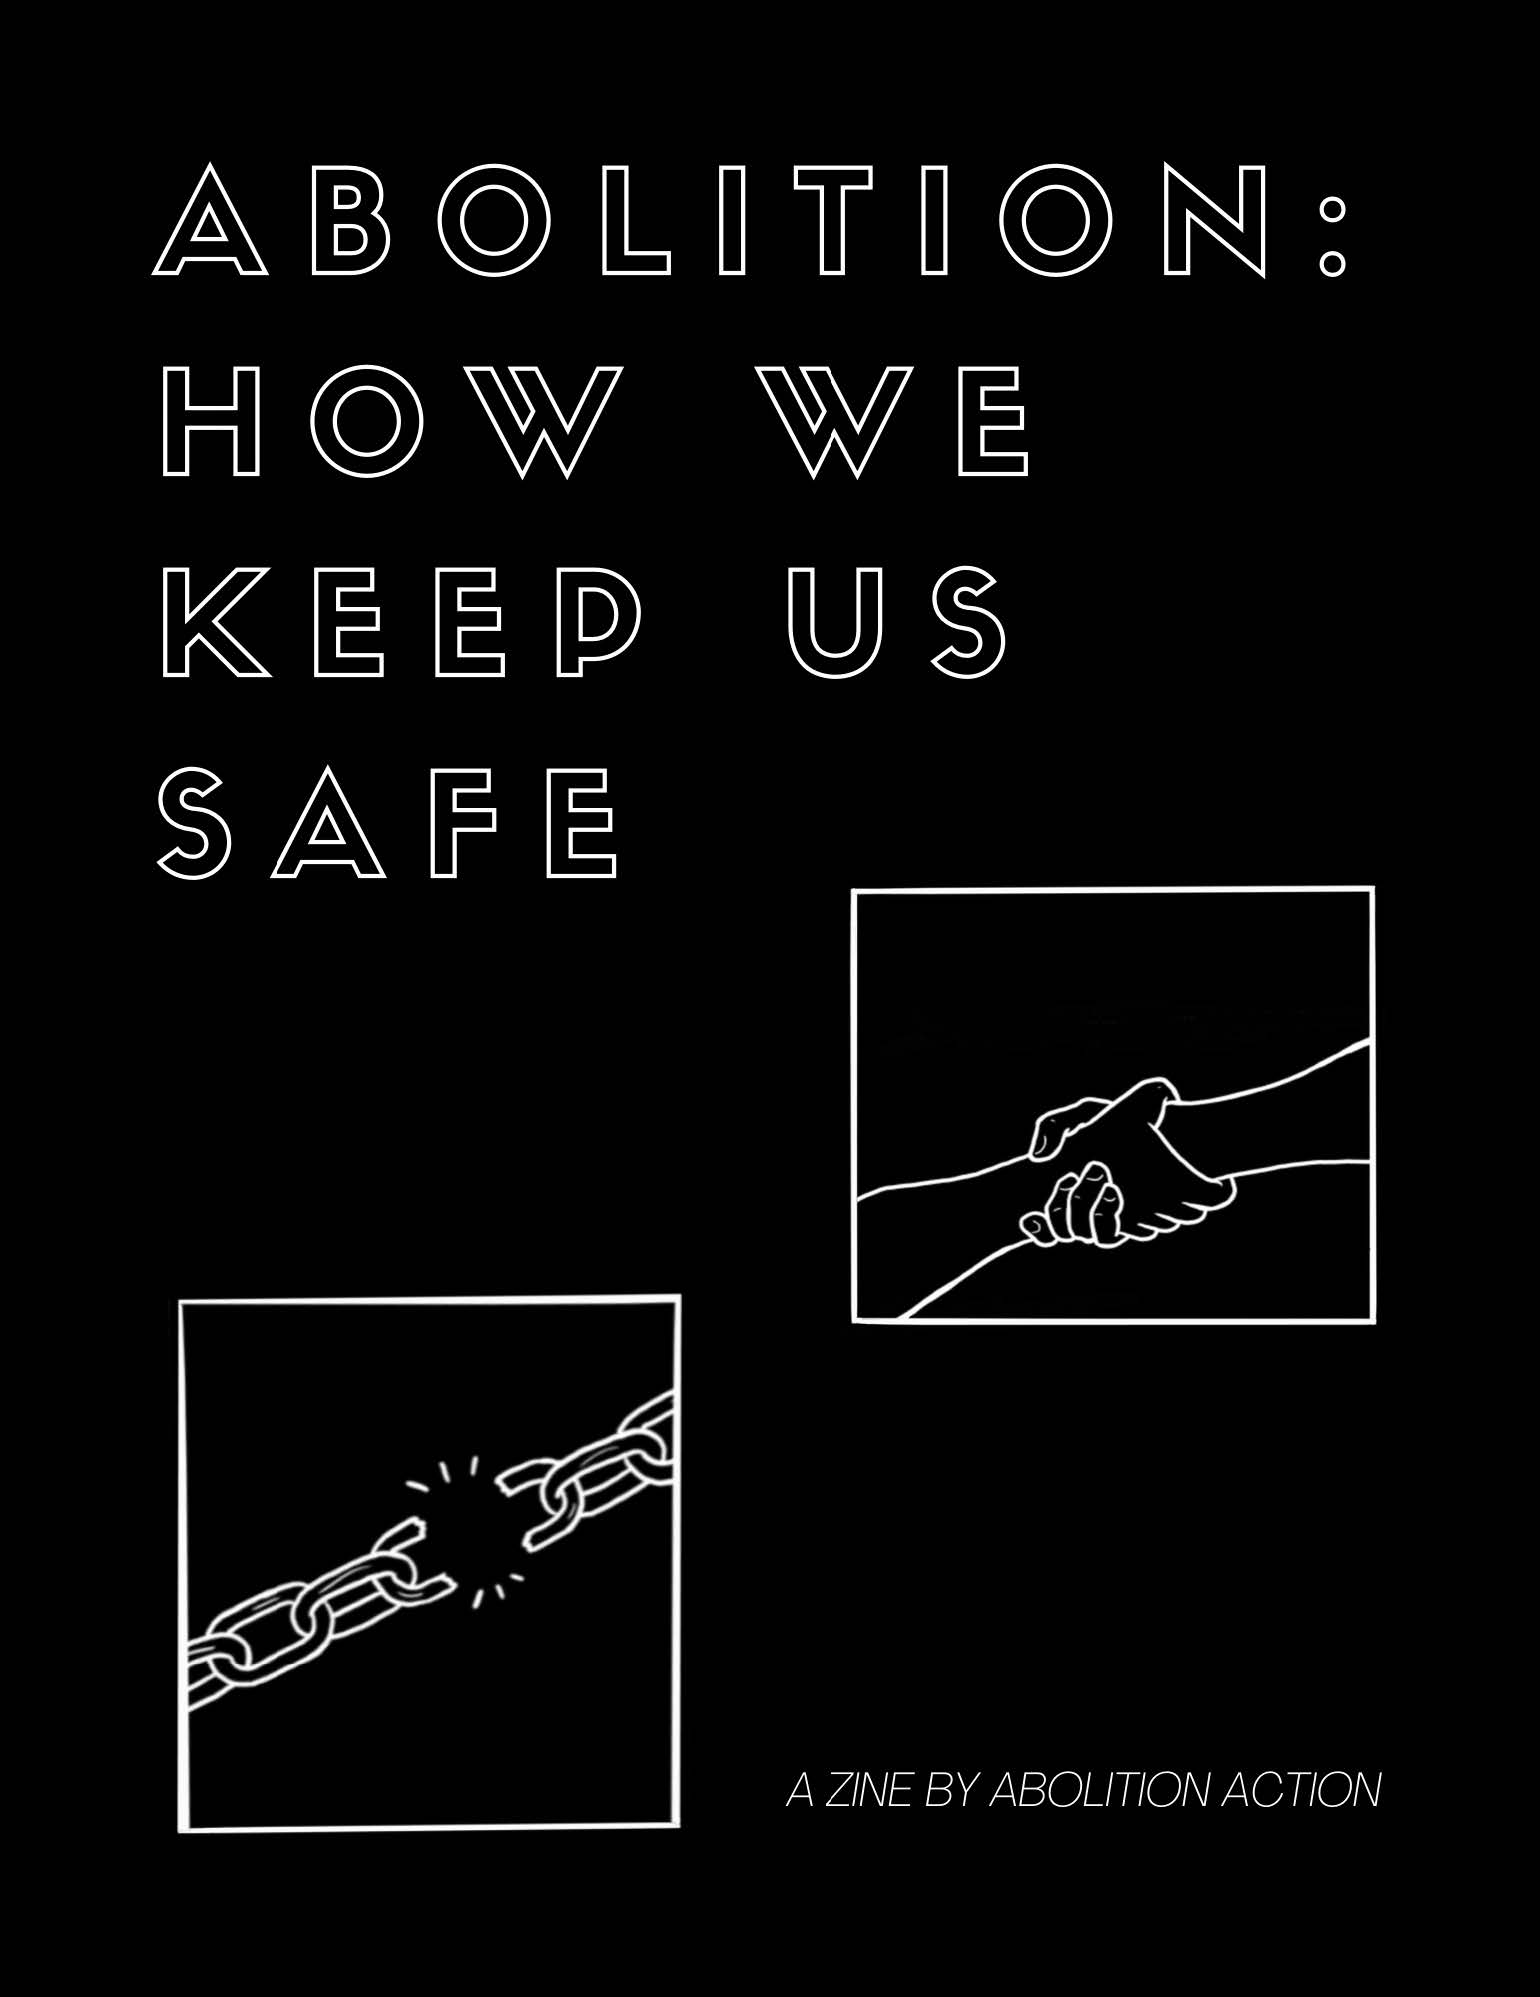 zine cover: white type on black background. graphics of breaking chain and arms holding each other by the wrist